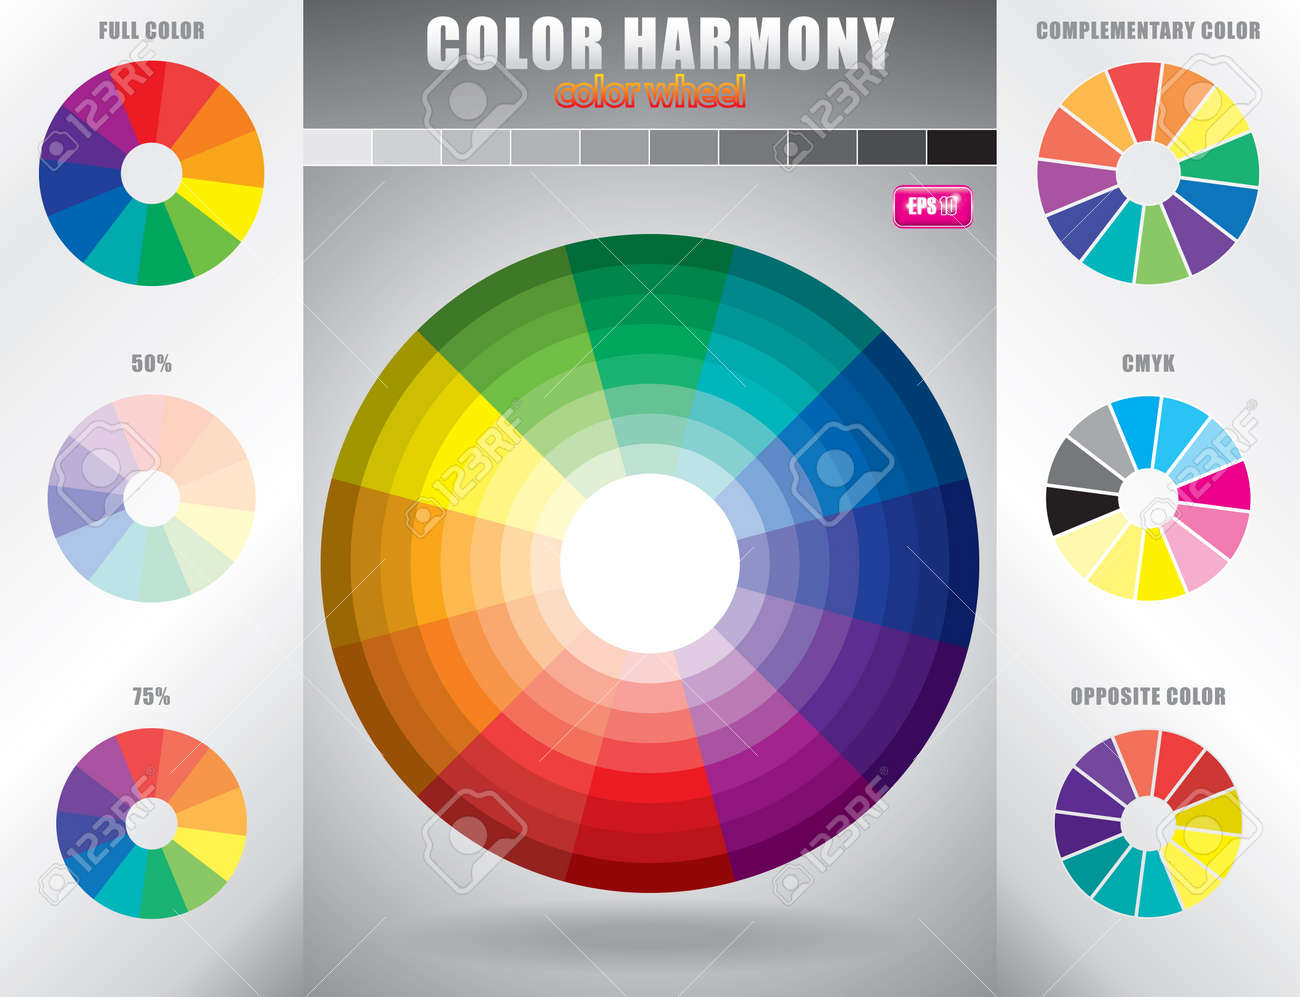 Color Harmony Color Wheel With Shade Of Colors Royalty Free Cliparts